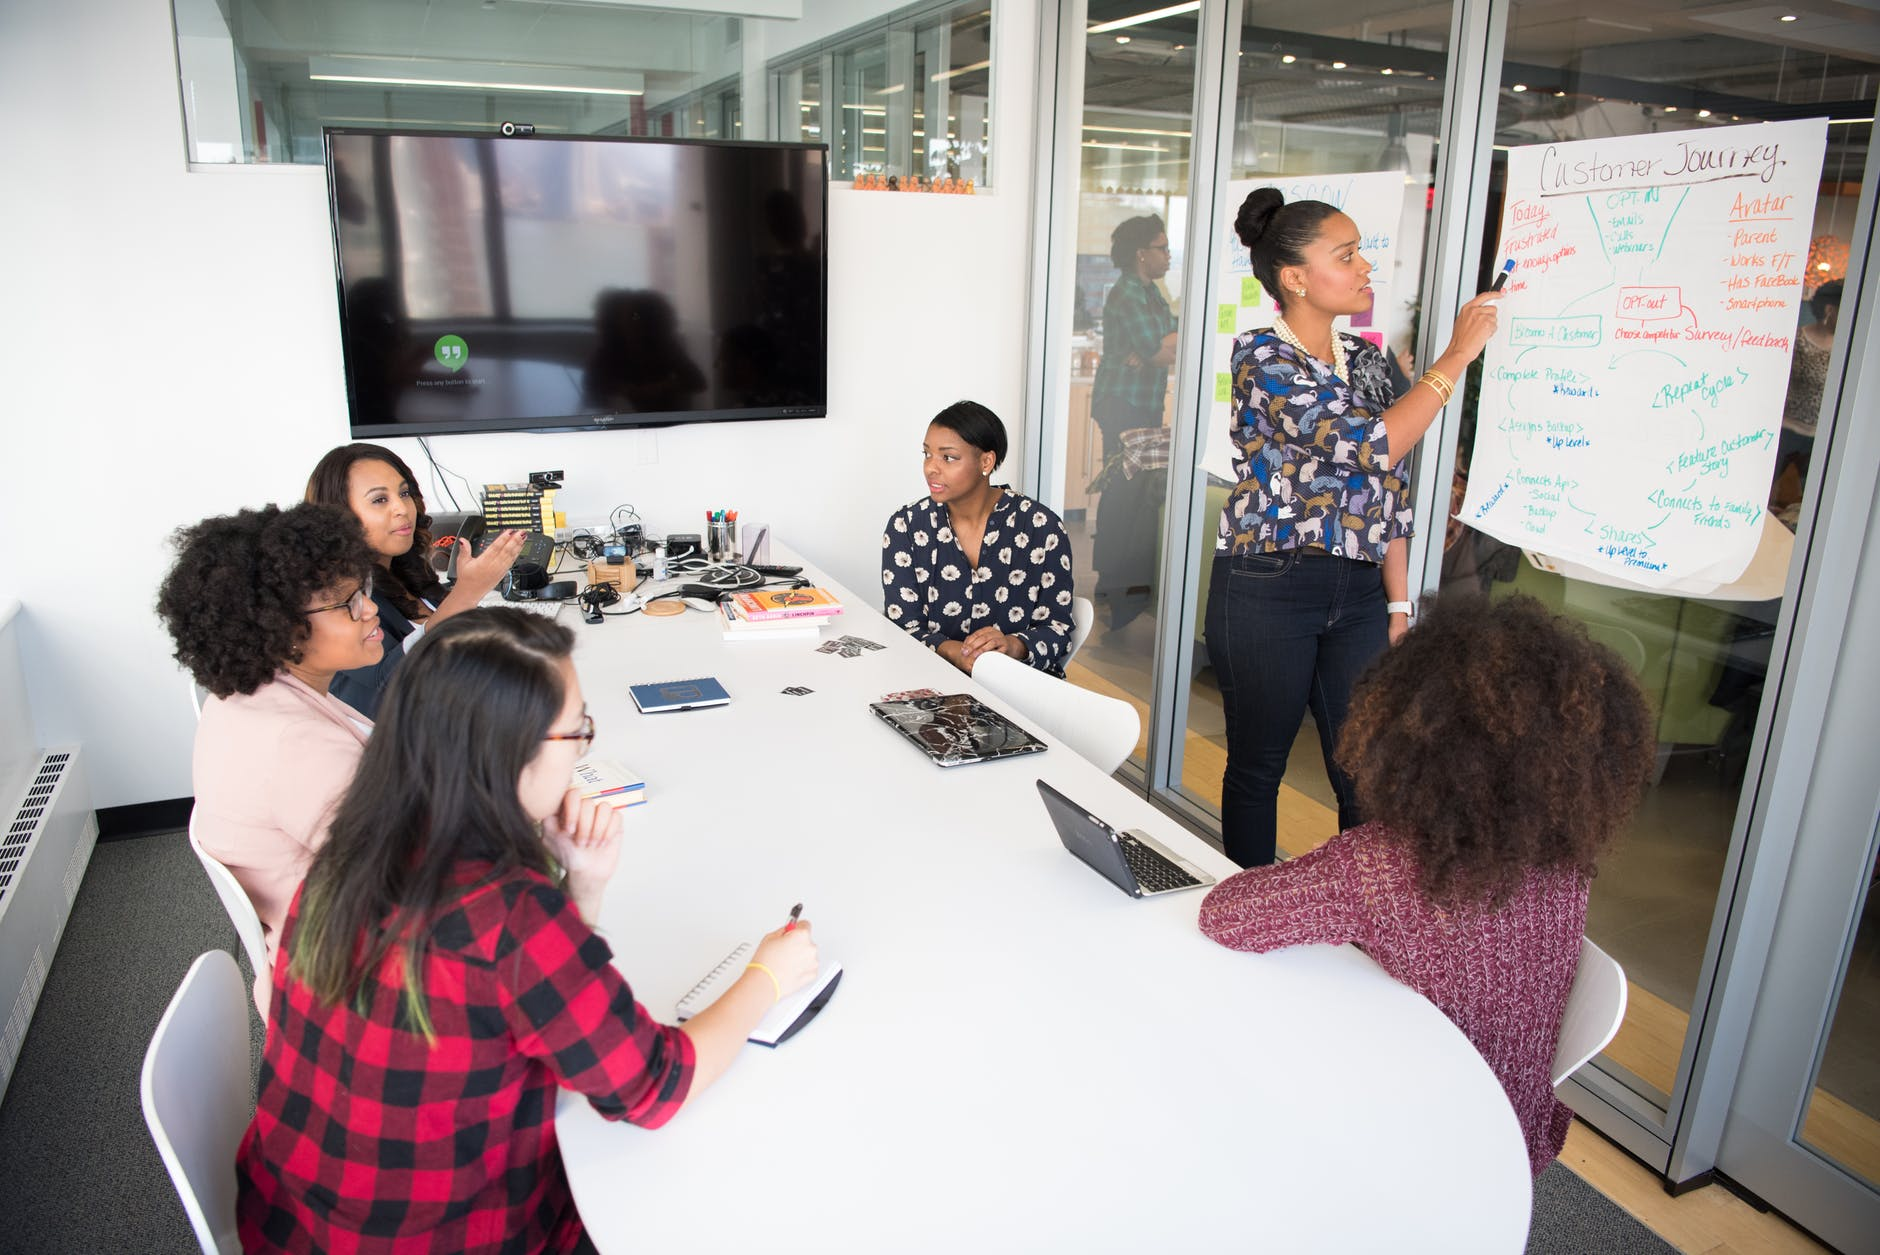 A manager's role in employee development and training